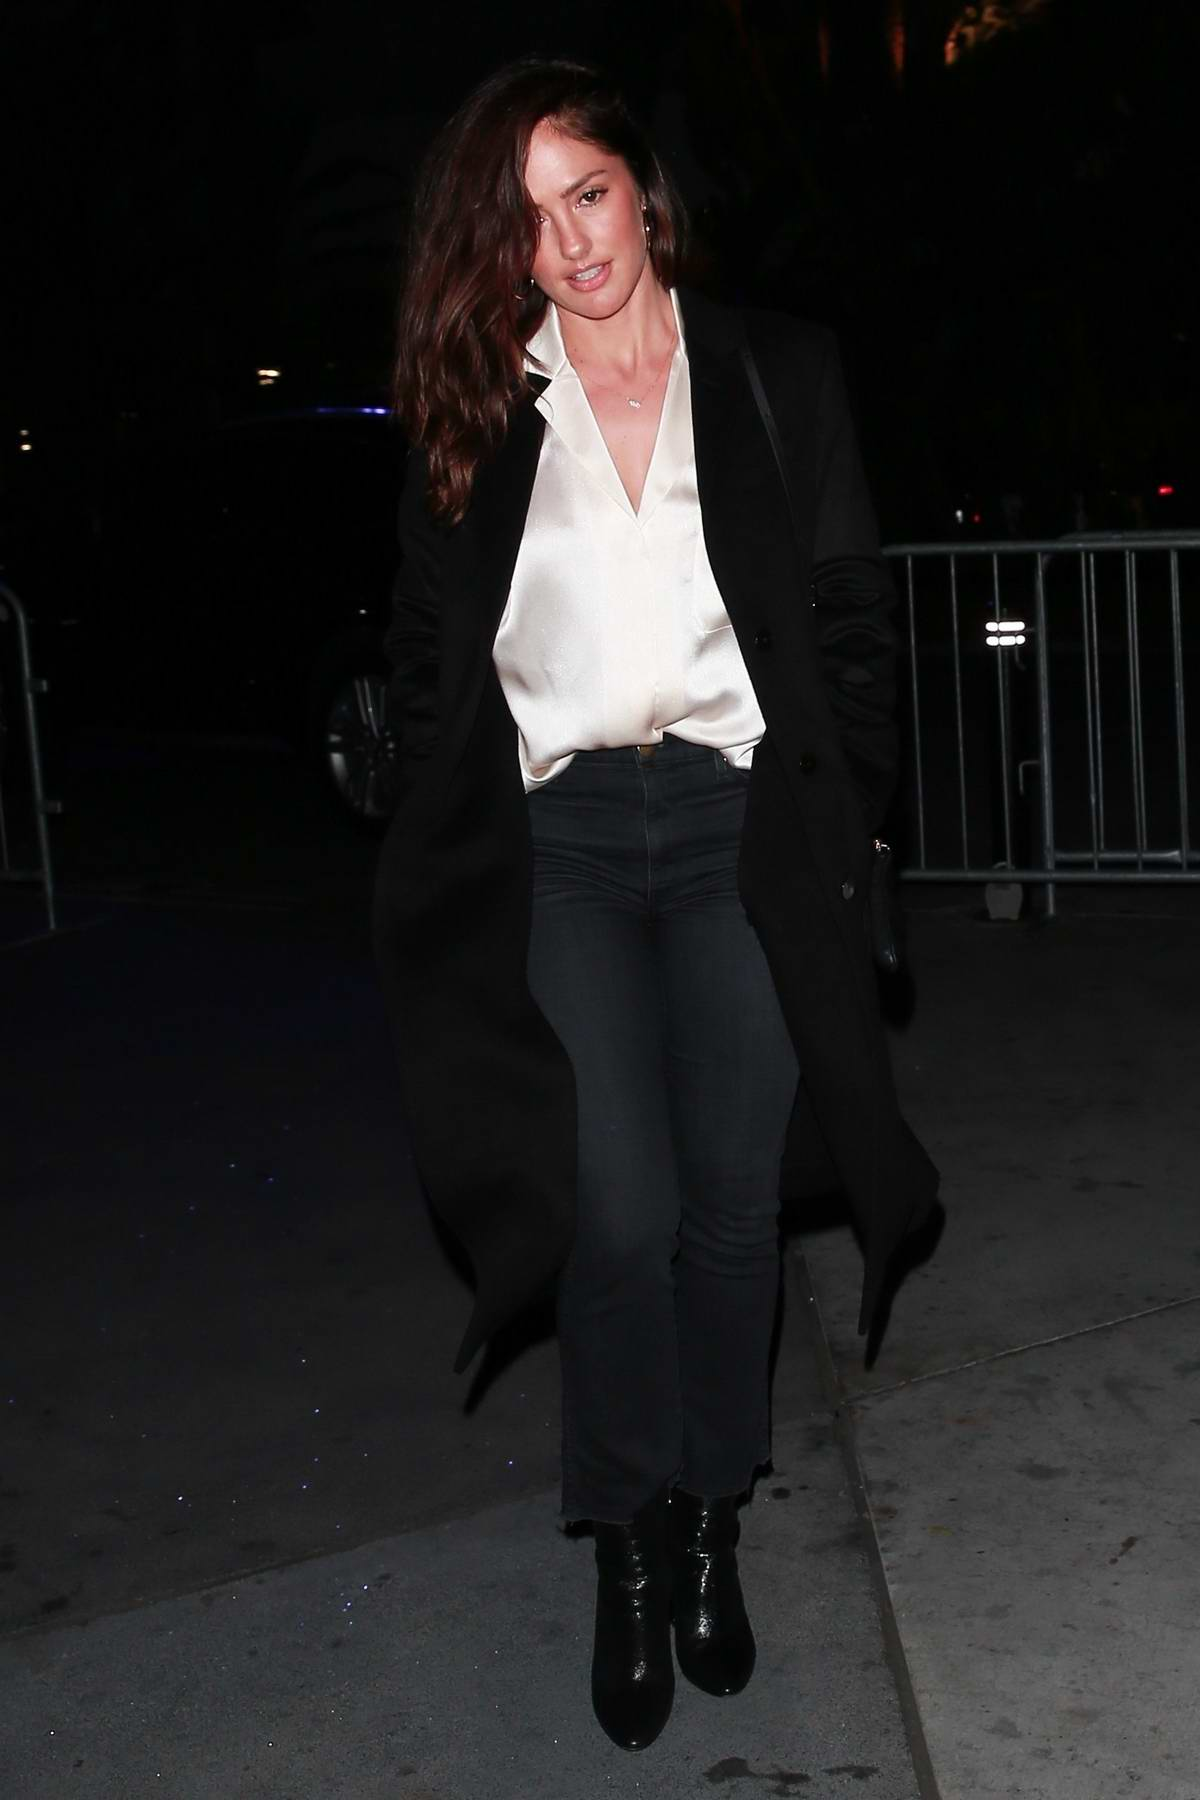 Minka Kelly heading to the Elton John concert at the Staples Center in Los Angeles